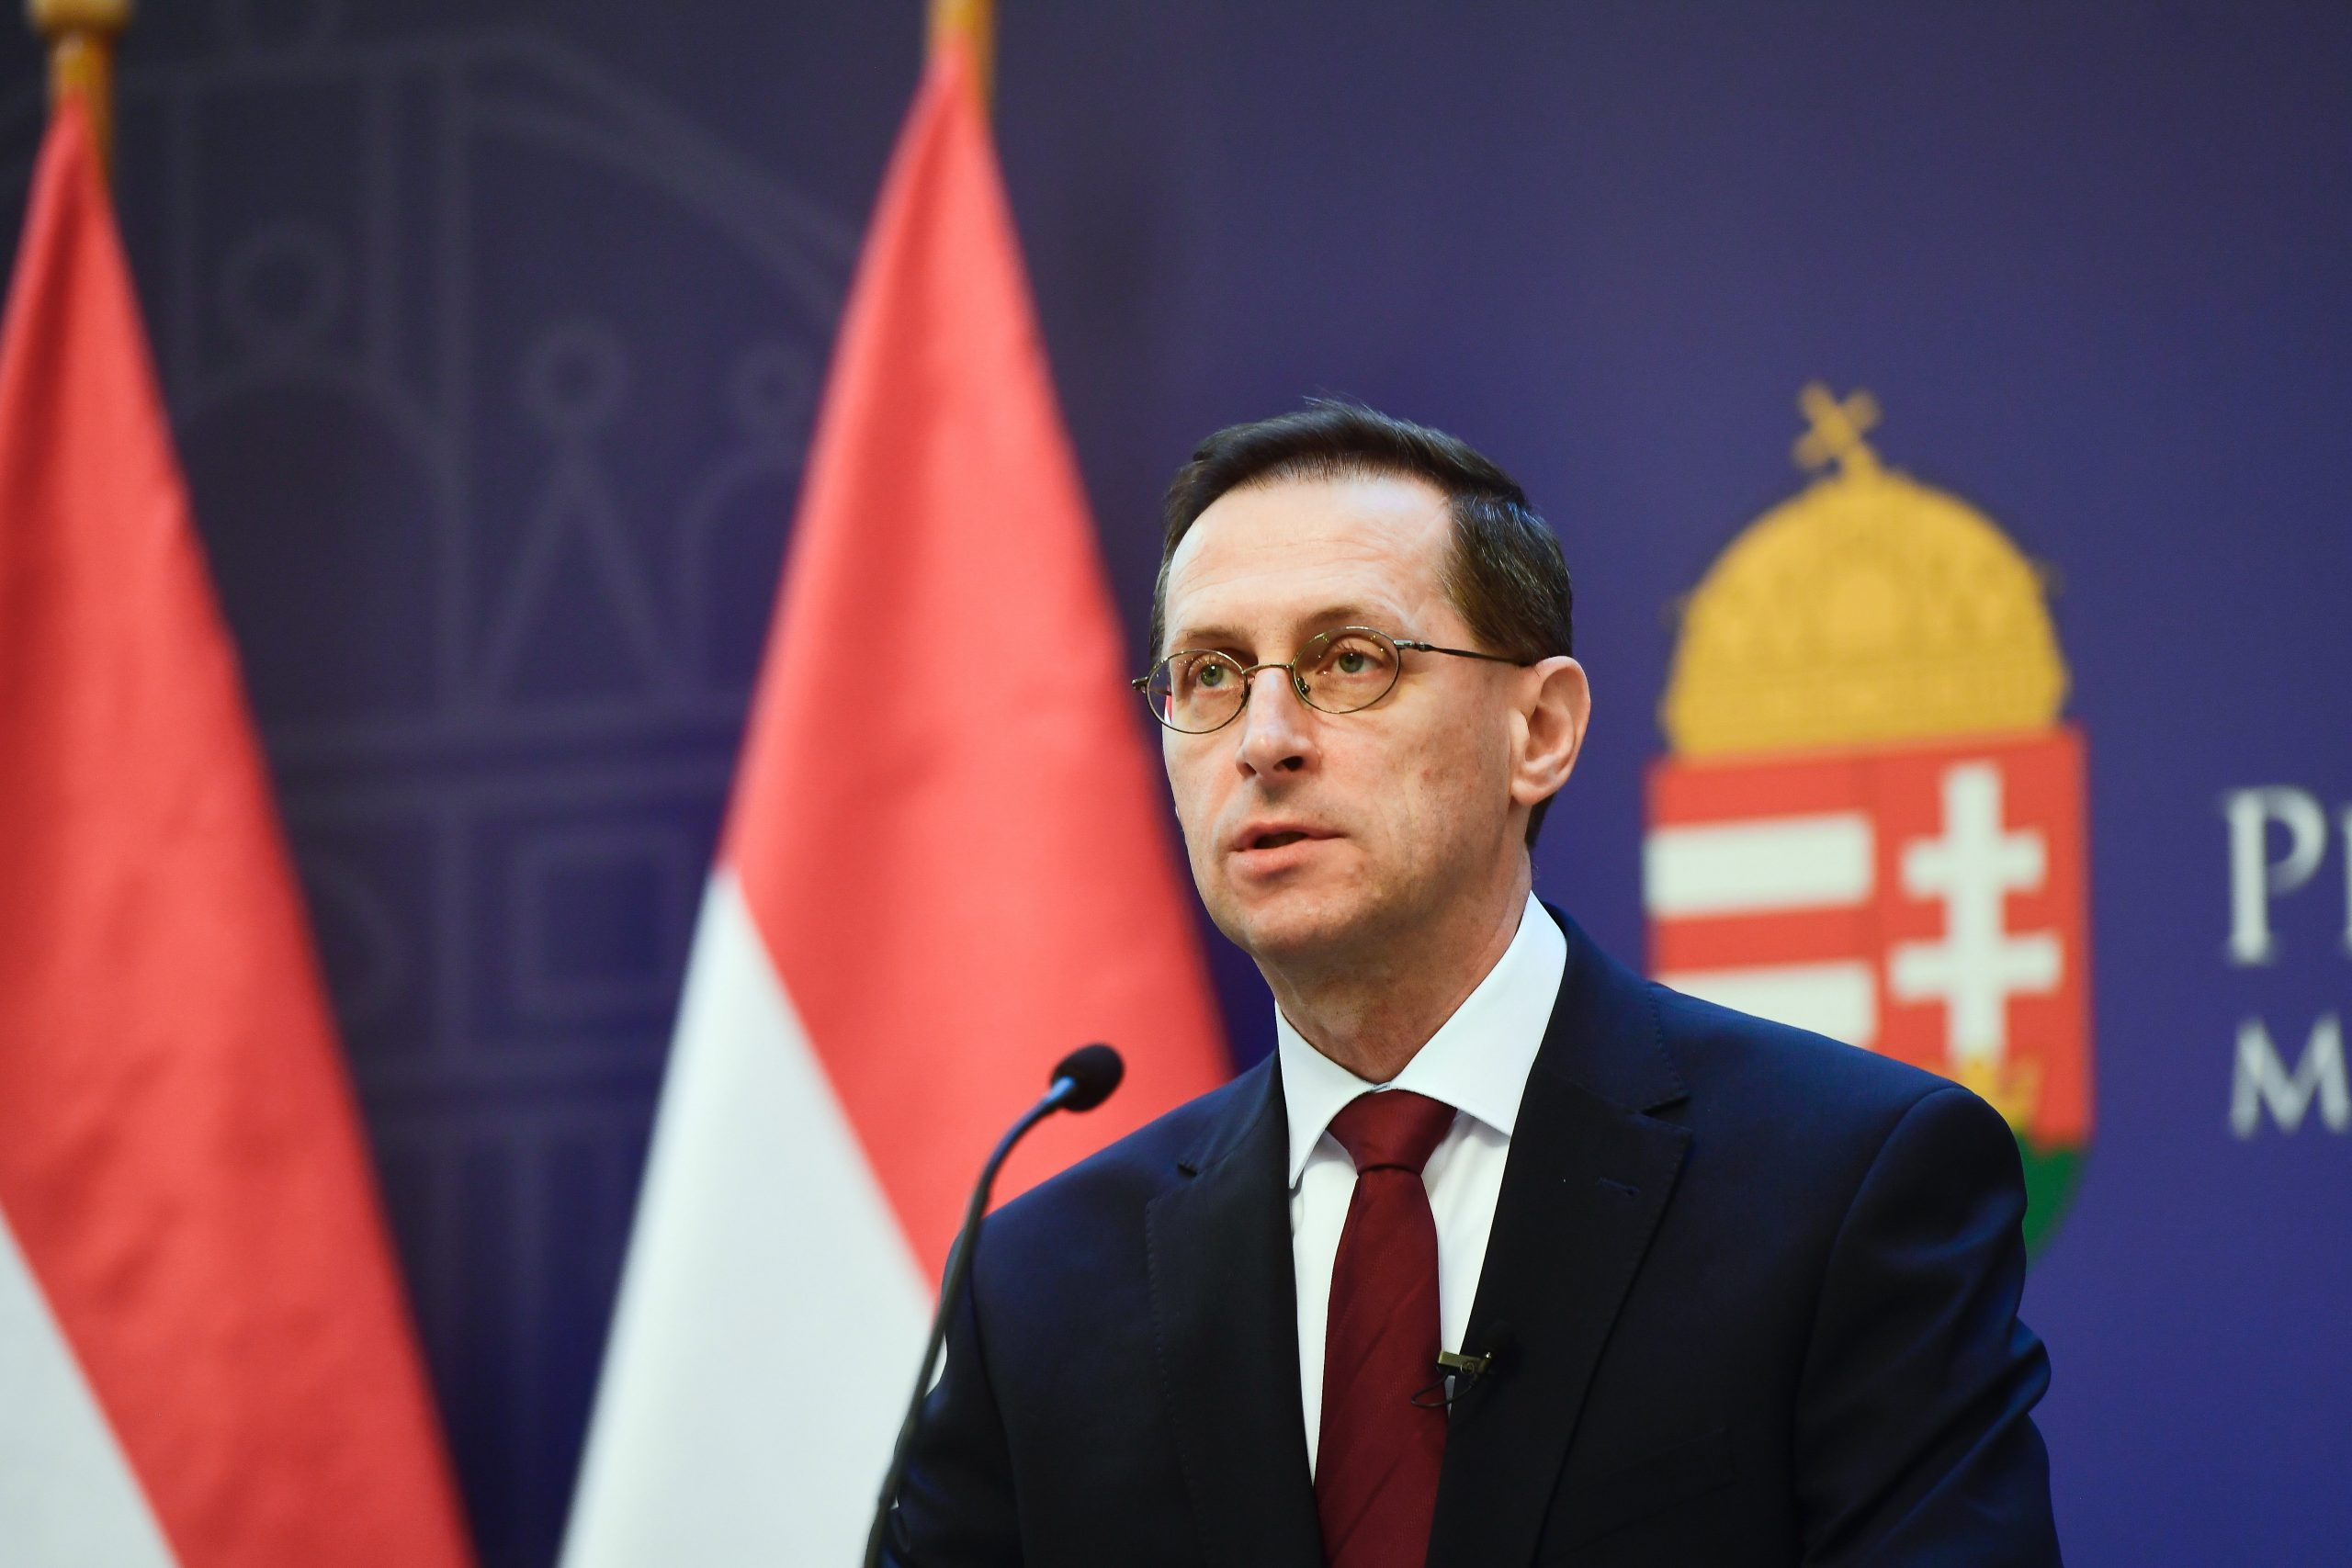 Minister Varga: EU Finance Ministers Agree Supportive Fiscal Policy Still Needed